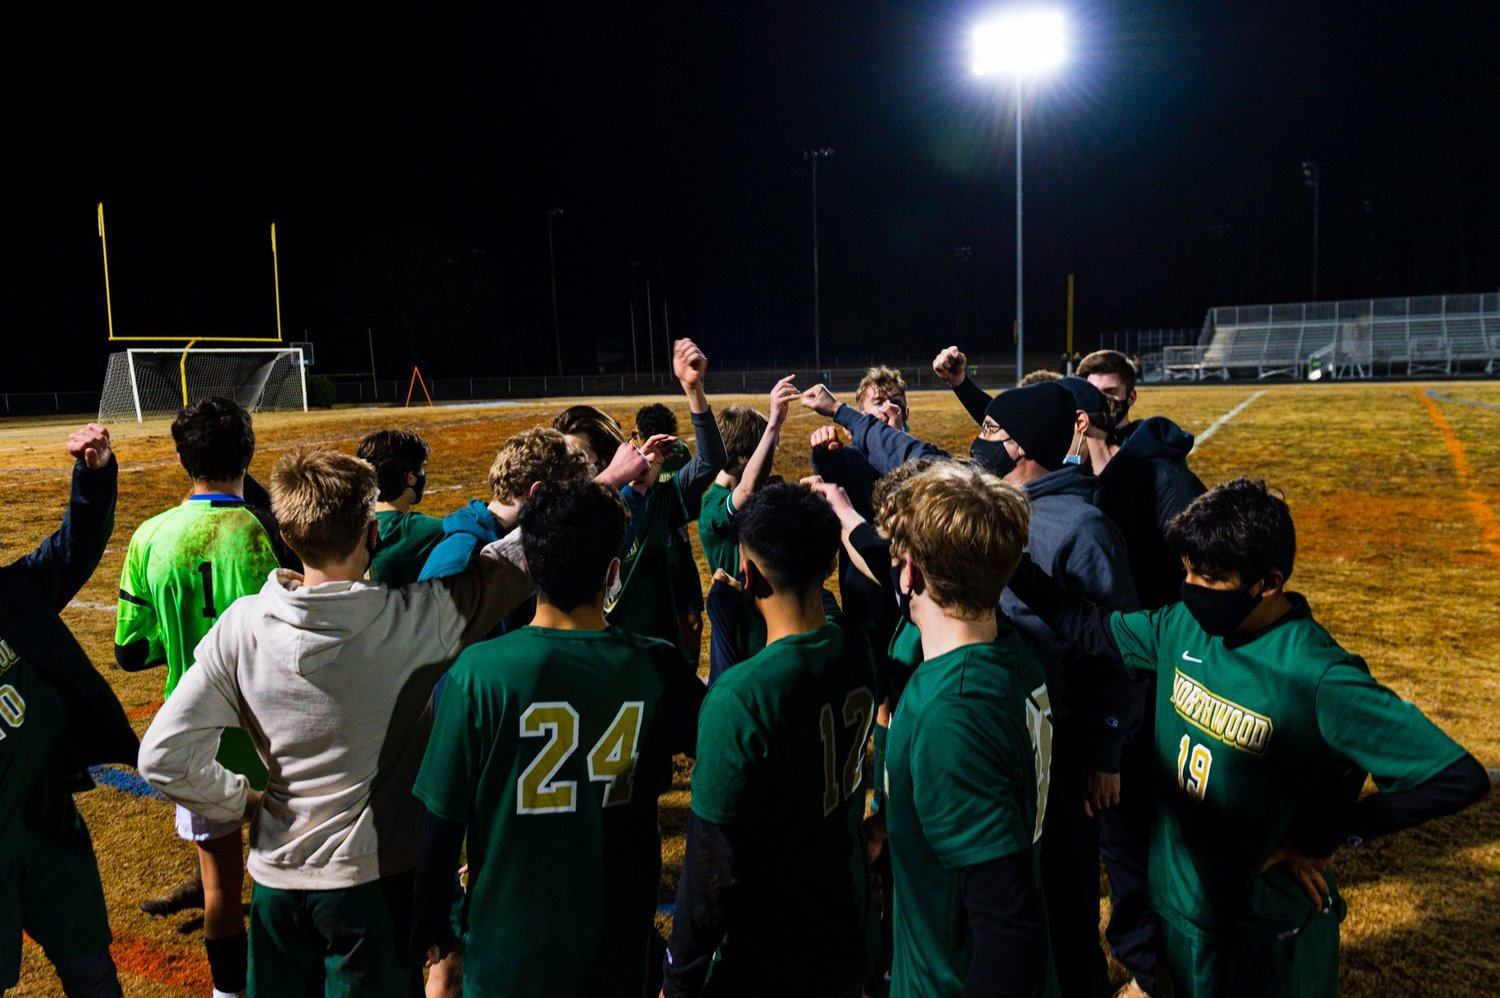 The Northwood men's soccer team gathers for a postgame huddle following its 4-0 victory against Orange on Wednesday. The Chargers improved to 3-2 with the win.